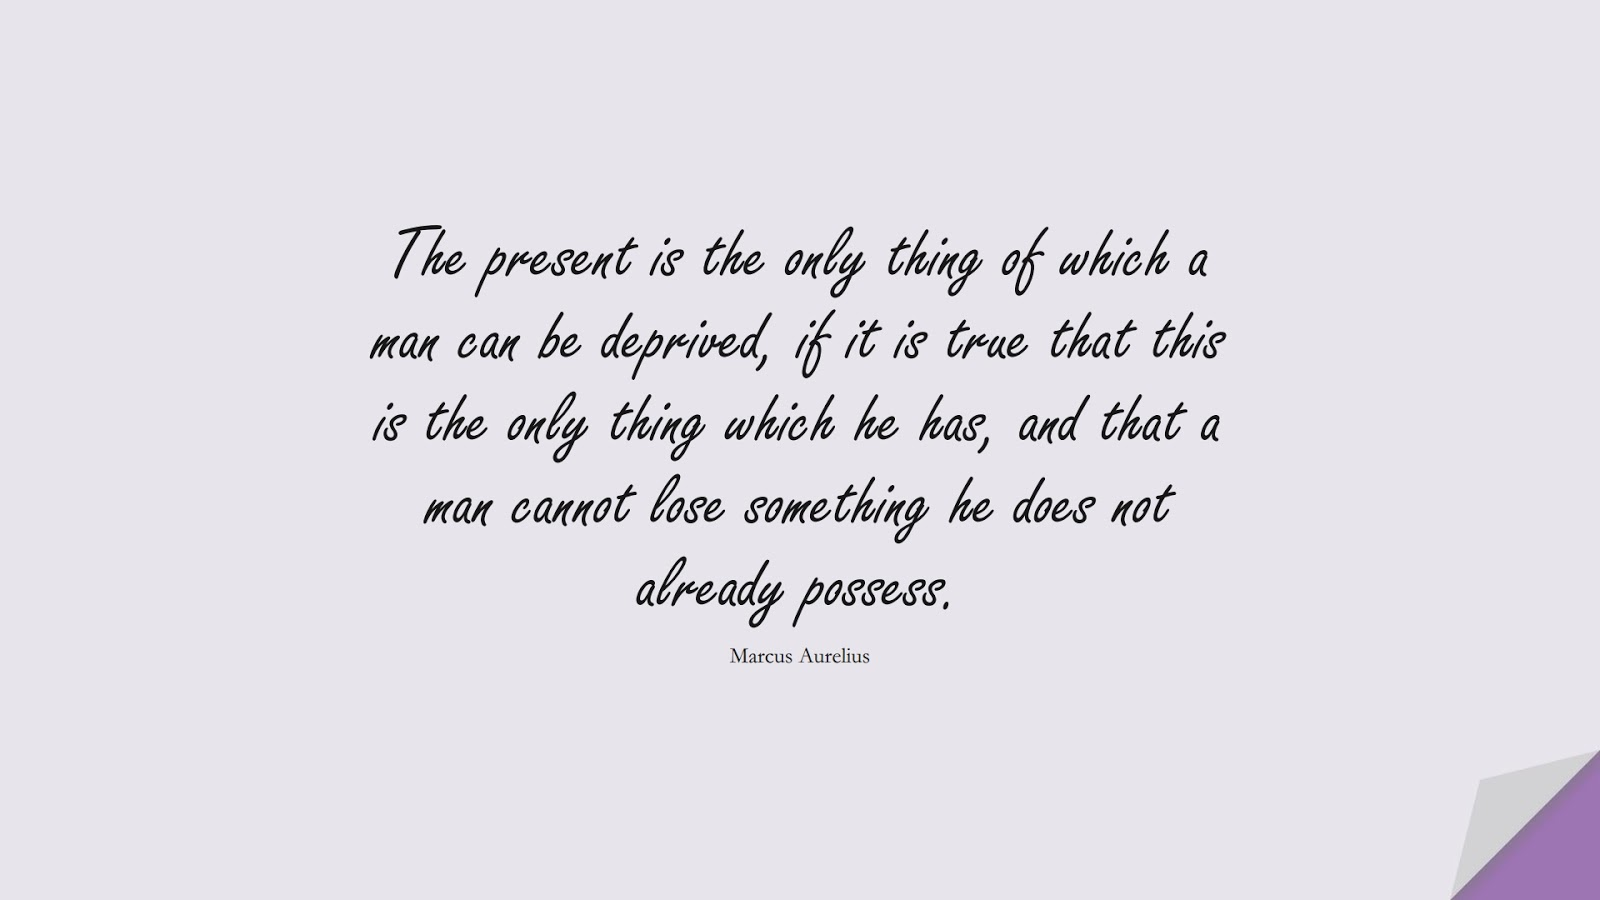 The present is the only thing of which a man can be deprived, if it is true that this is the only thing which he has, and that a man cannot lose something he does not already possess. (Marcus Aurelius);  #MarcusAureliusQuotes